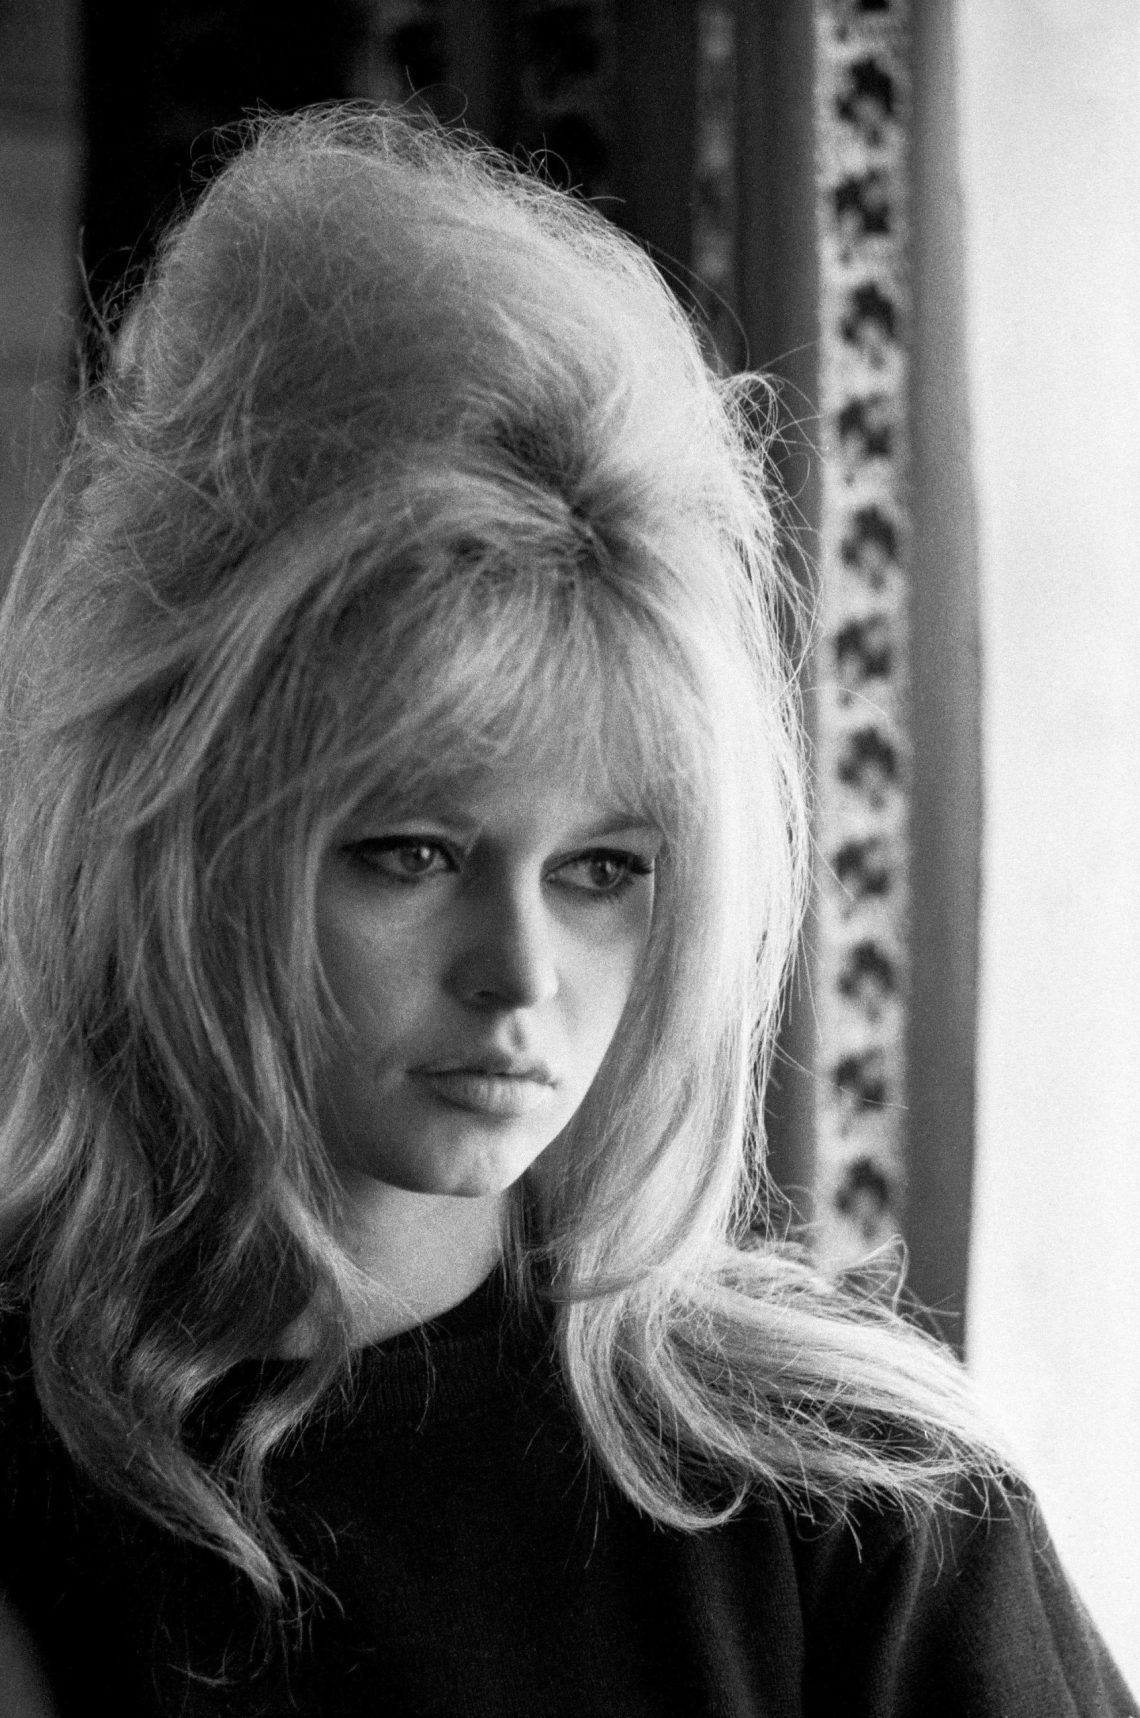 19 Best '60S Hairstyles For Retro Lovers | Stylish '60S Hair 60S Medium Length Hairstyles